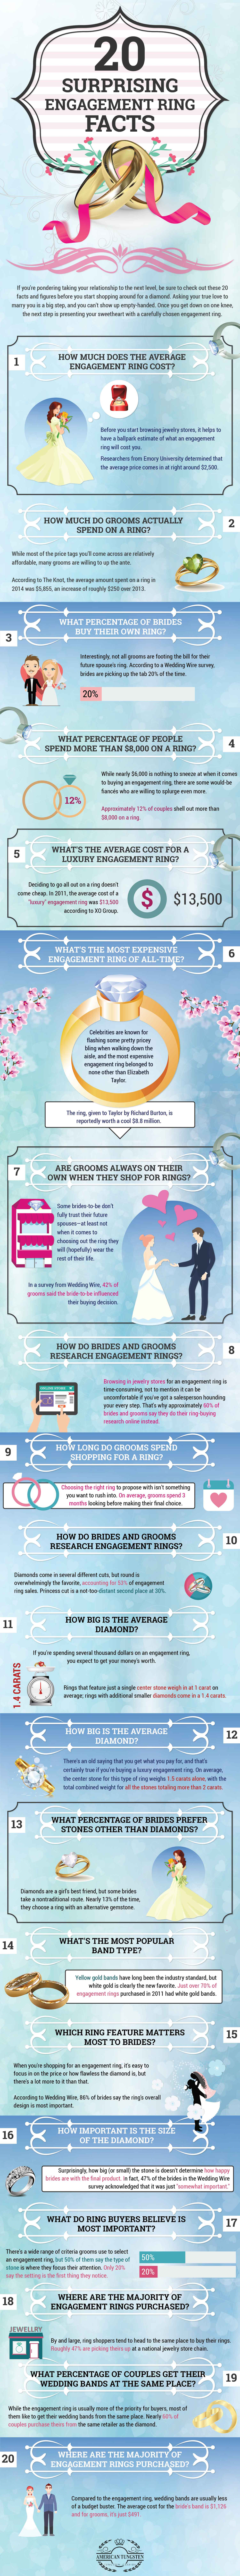 20 surprising engagement ring facts - infographic